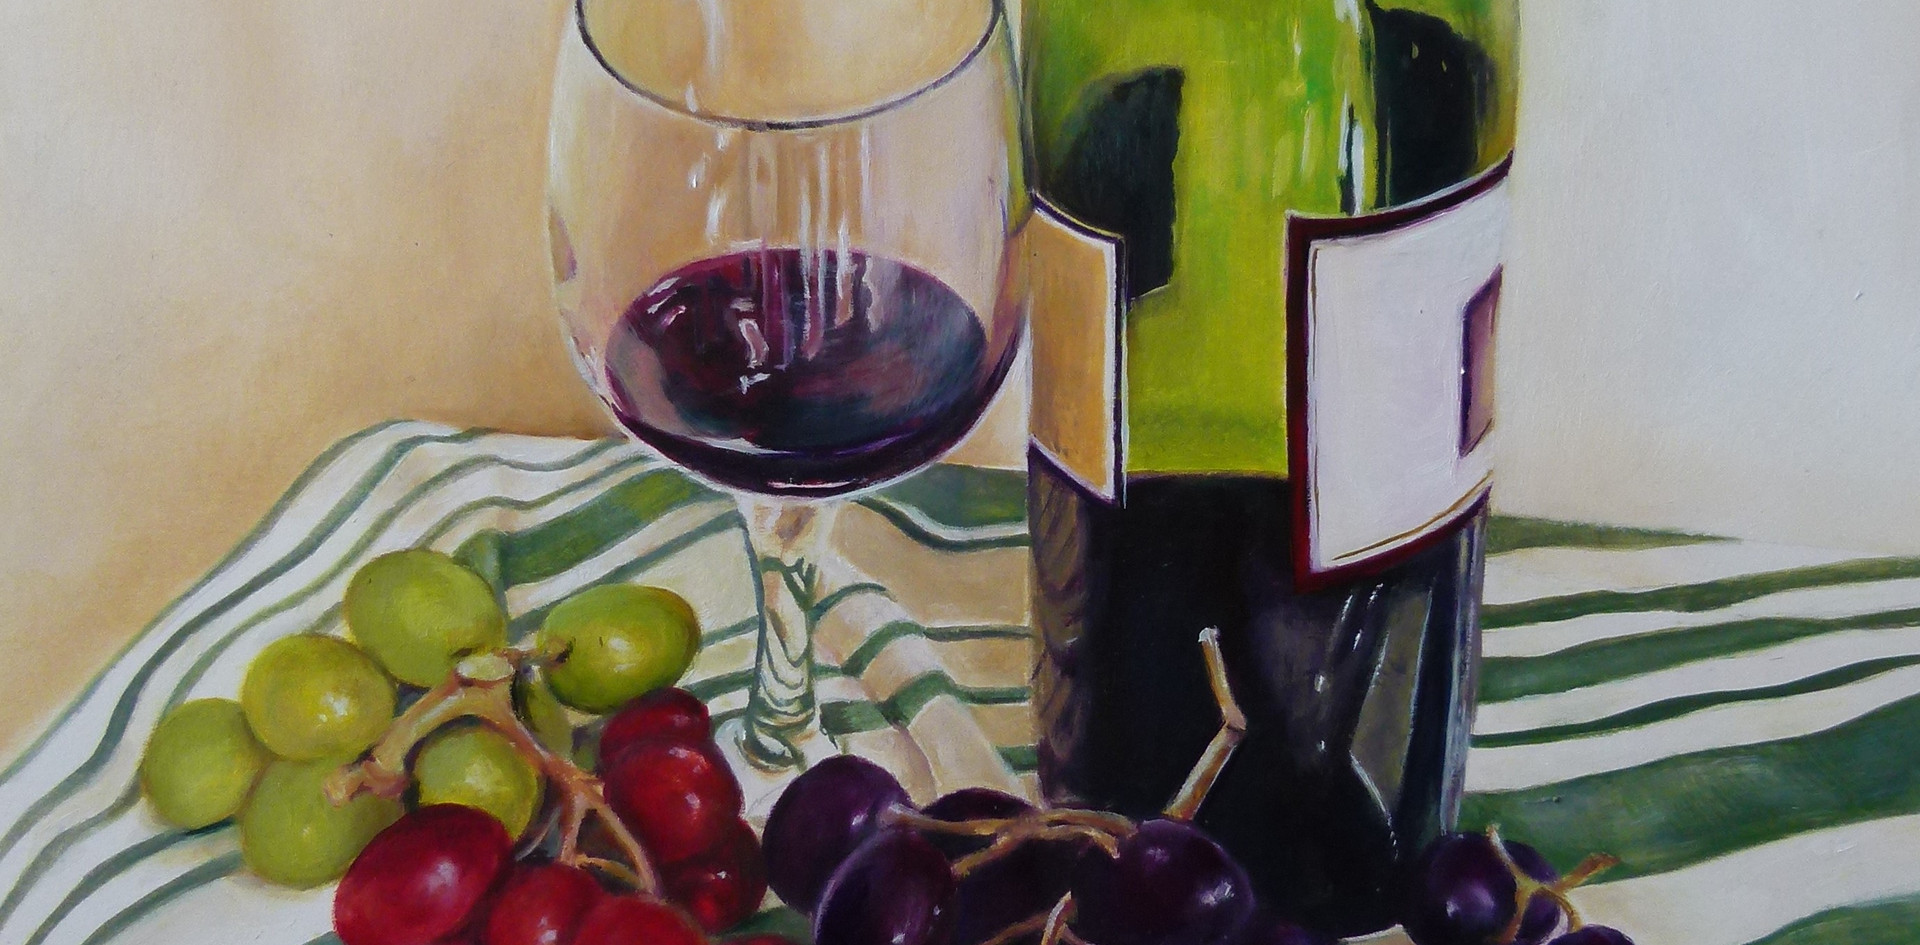 Still Life of wine and grapes on teacloth